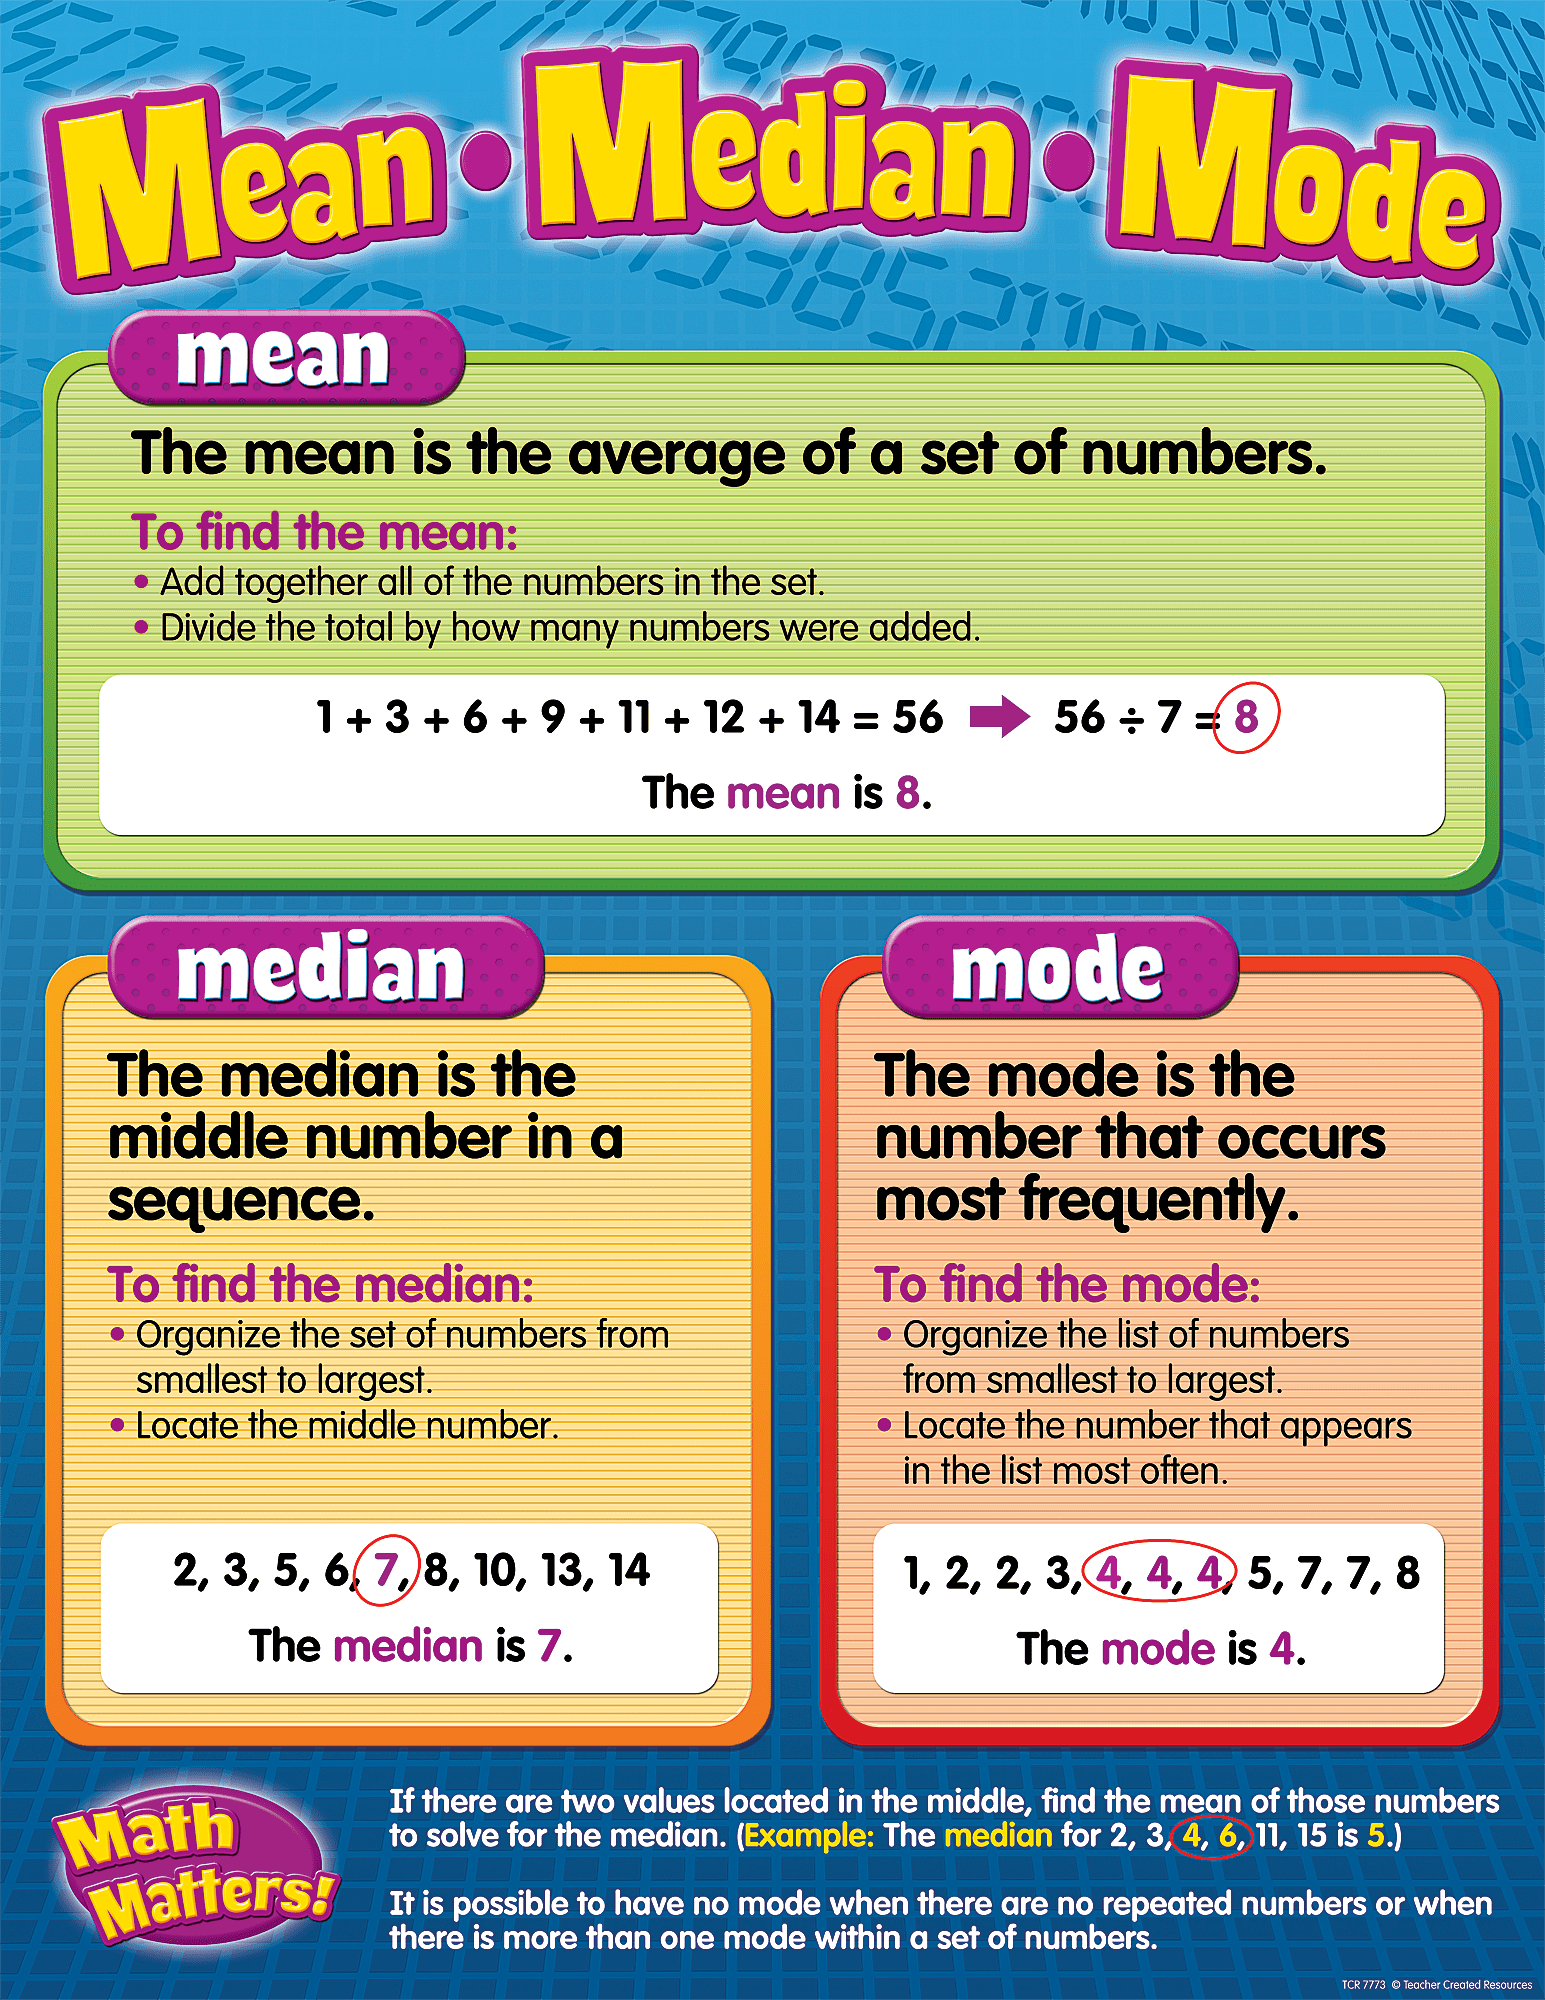 Mad Mean Median Mode Worksheet